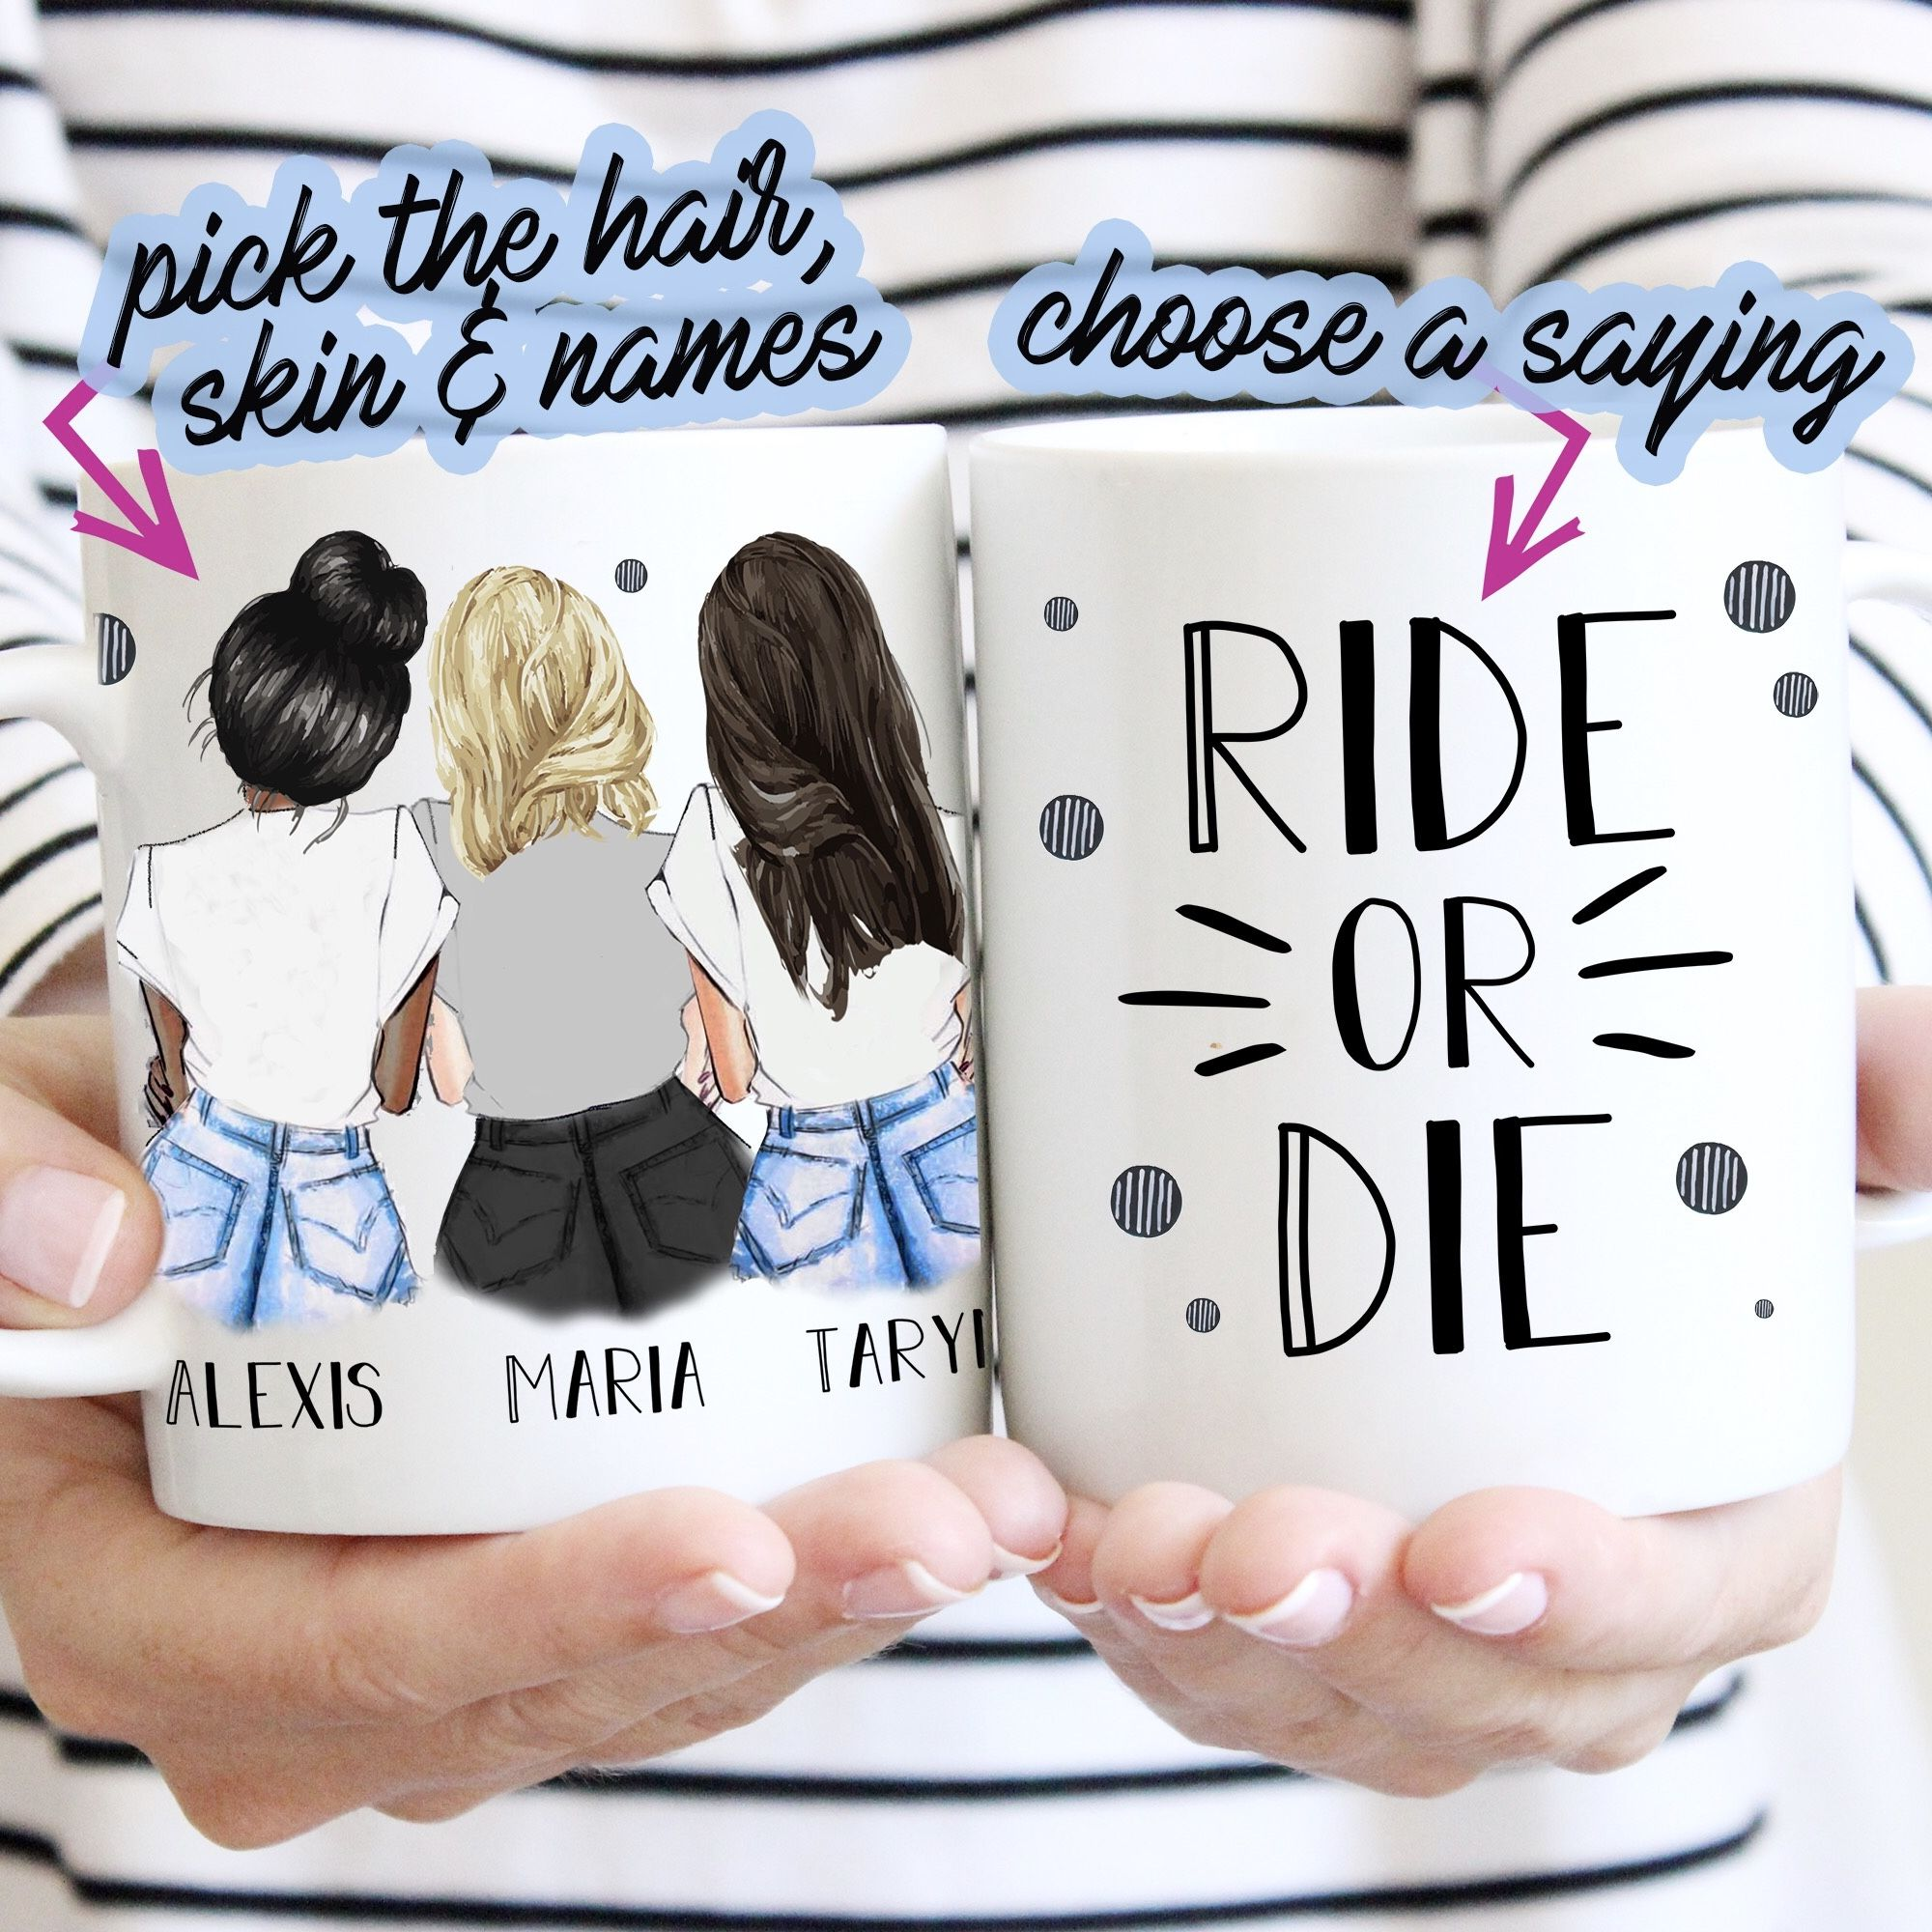 Best Friends Forever Trio - Casual - Personalize the Girls - Gift for Besties or Sisters #giftsforsister